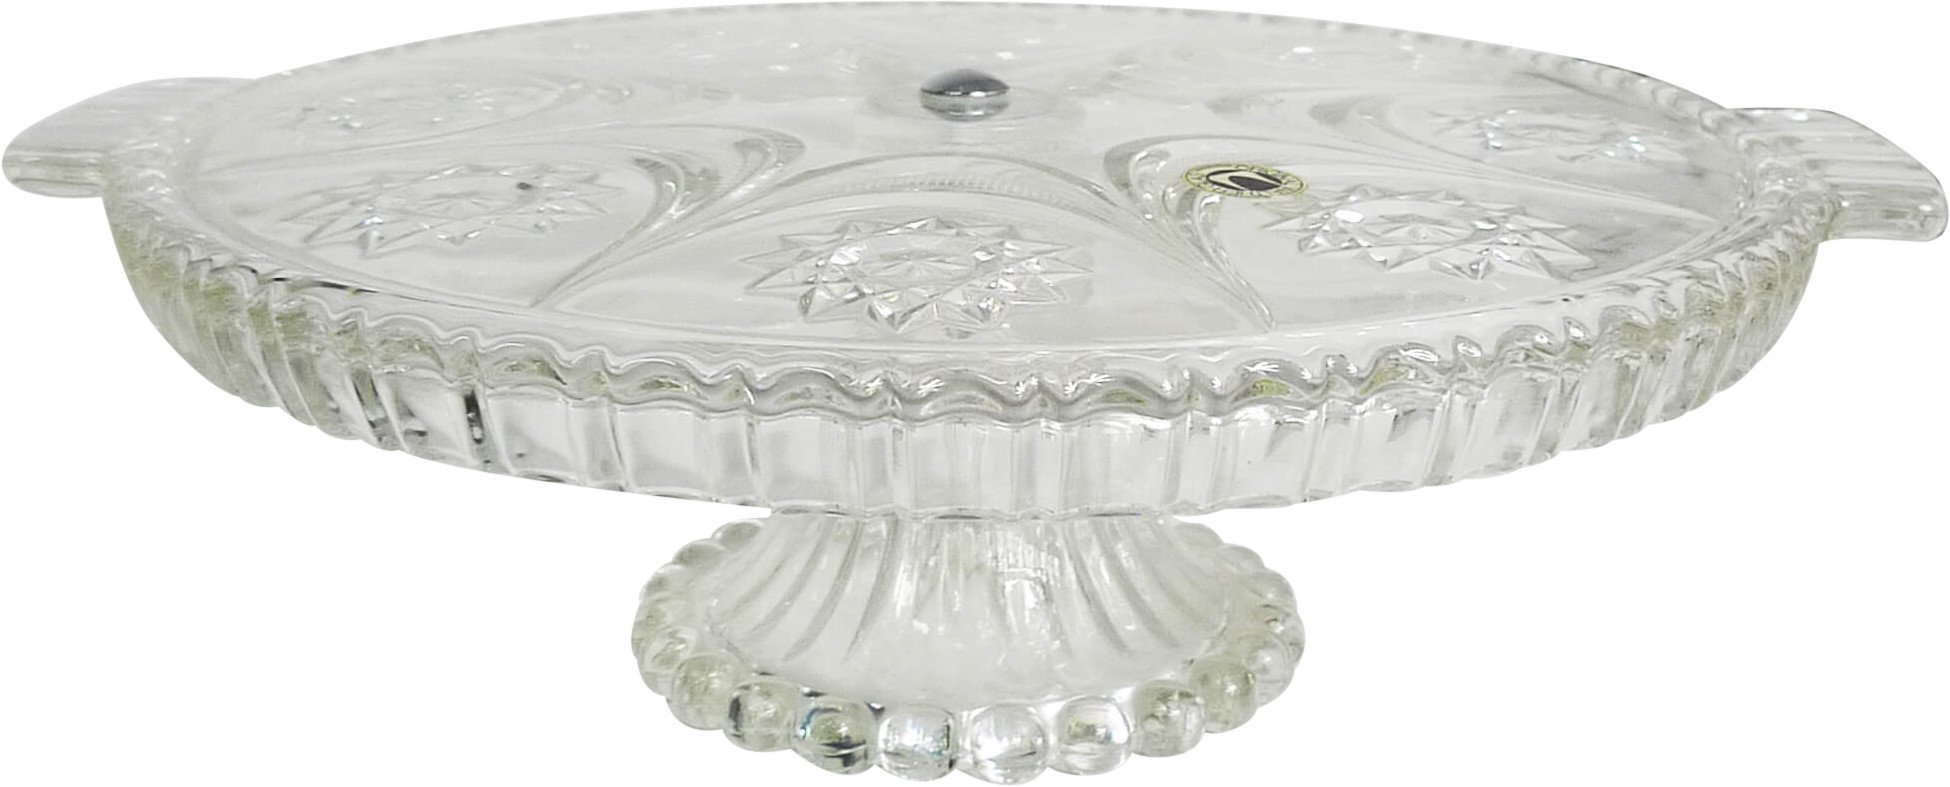 Crystal Pedestal Plate, Walther Glas, Germany, 1970s